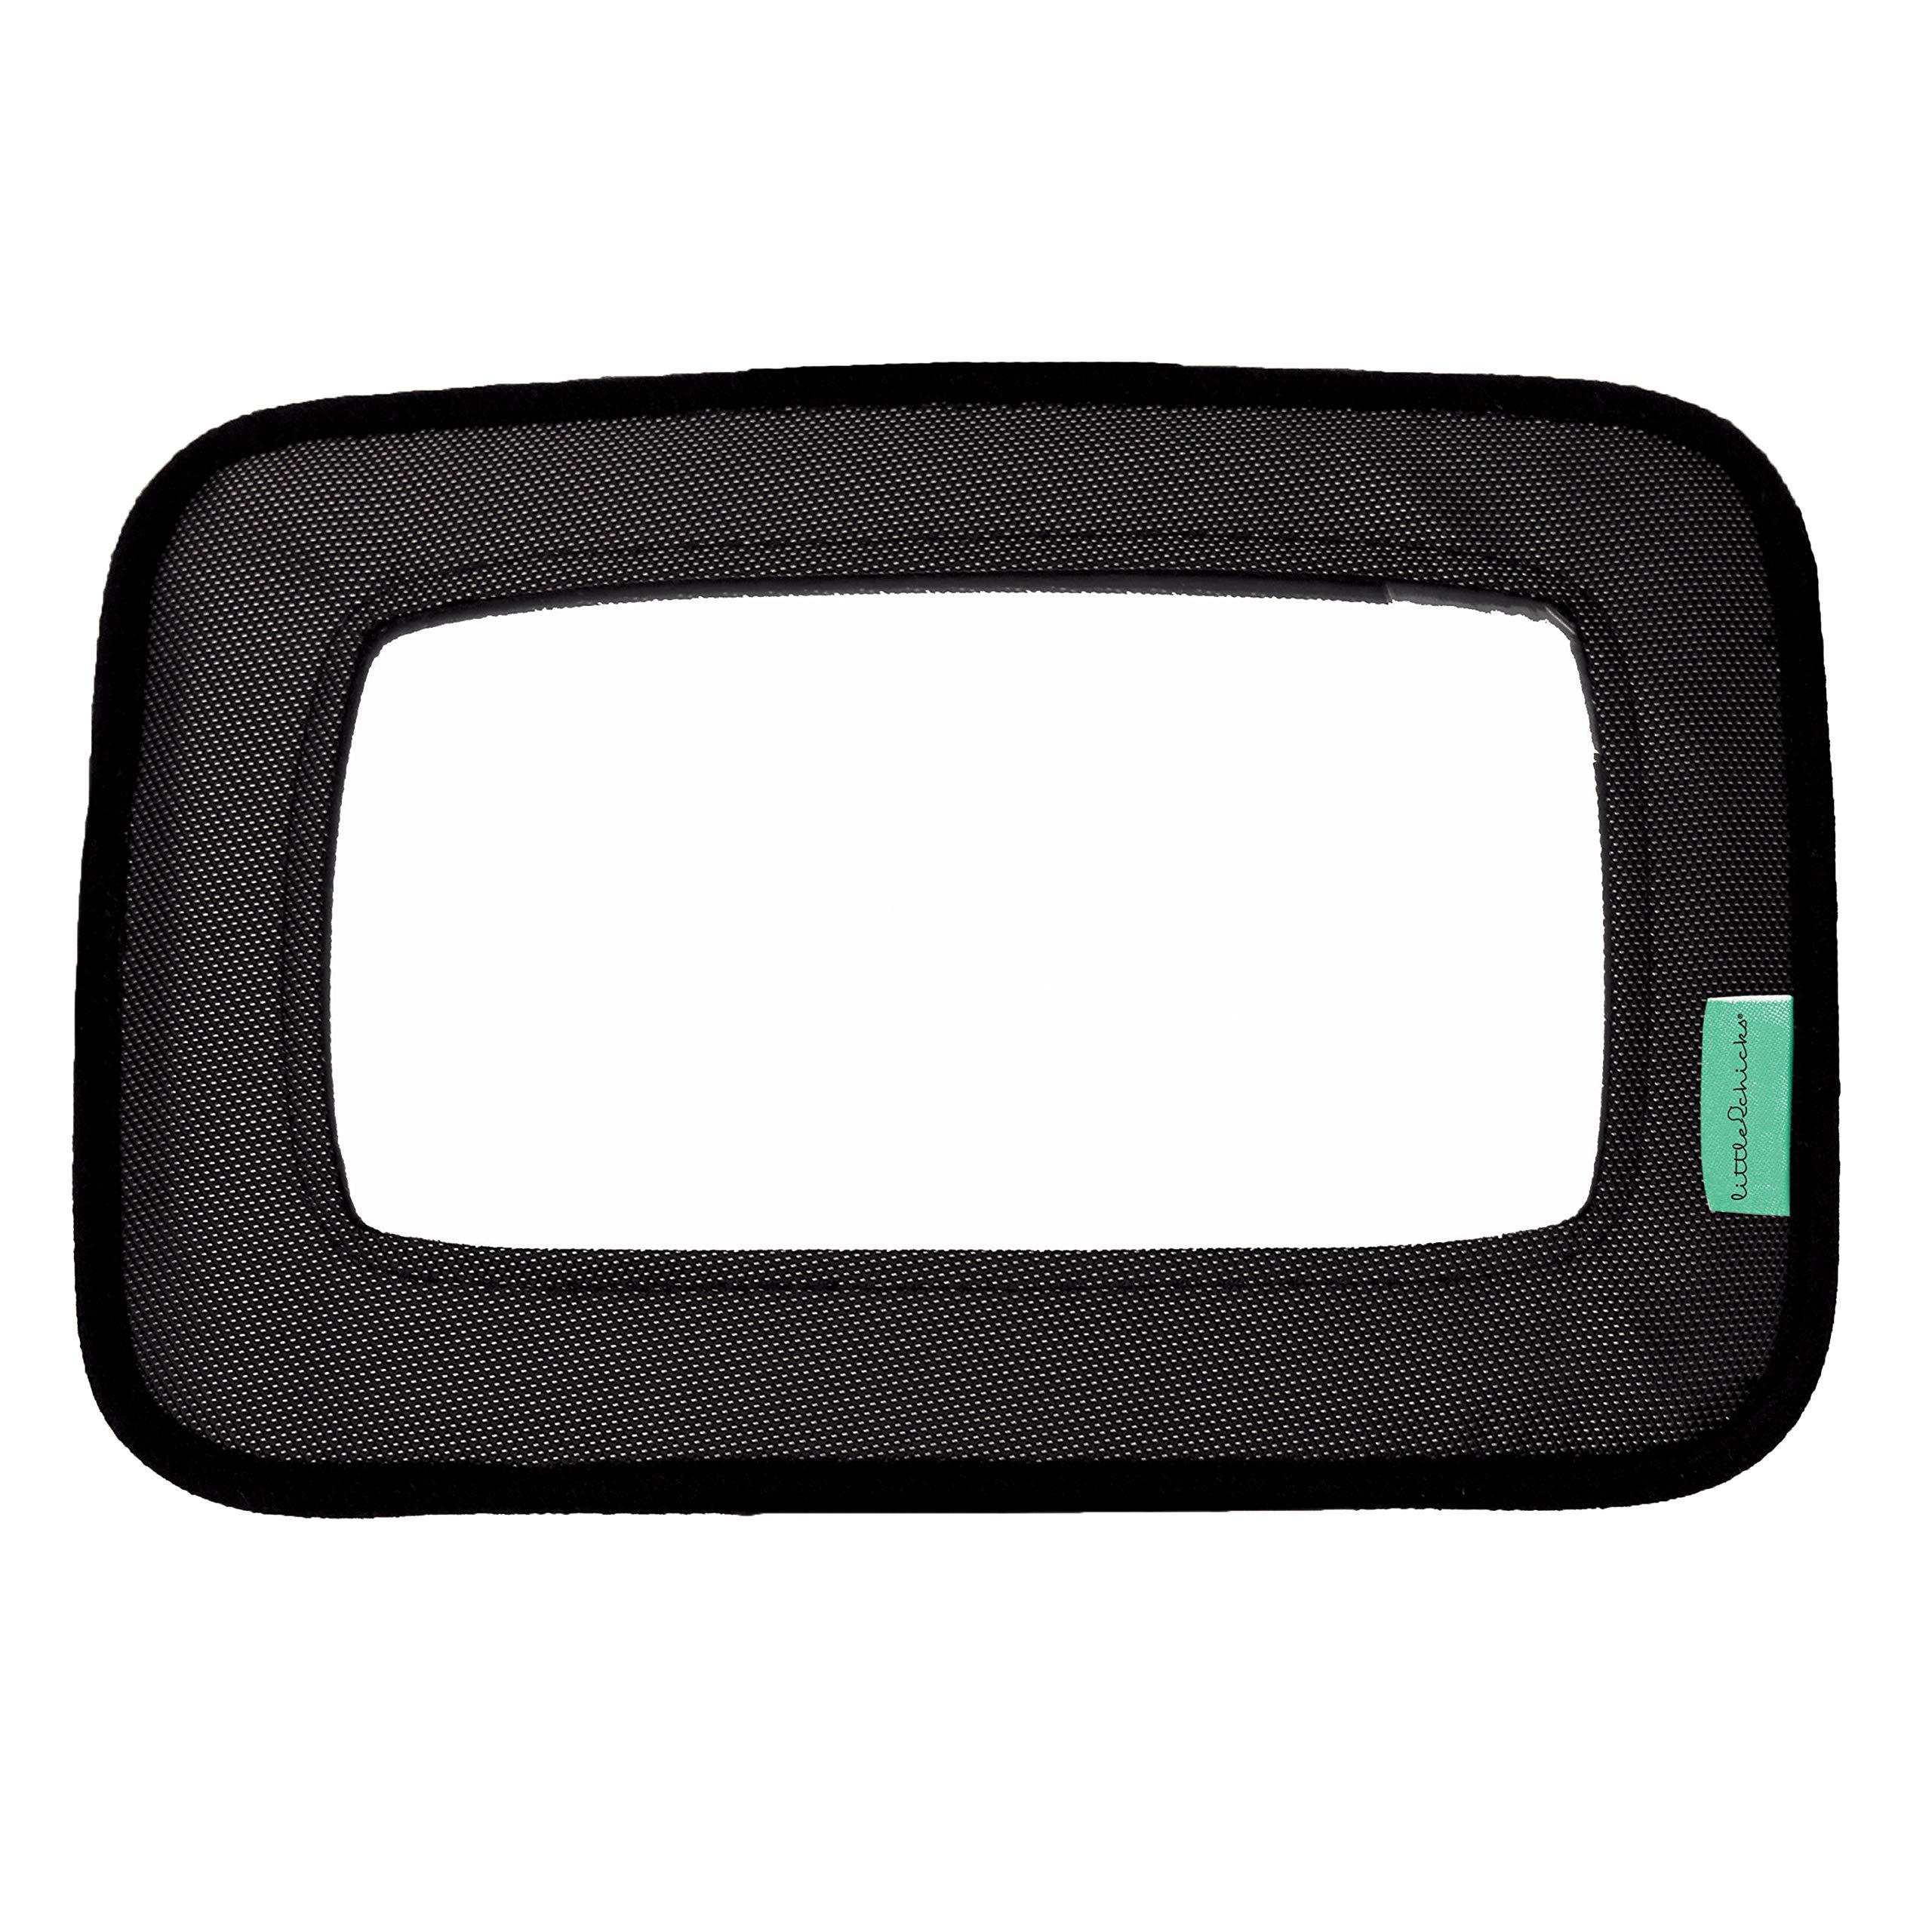 Little Chicks Rear Facing Baby Easy View Mirror by Little Chicks